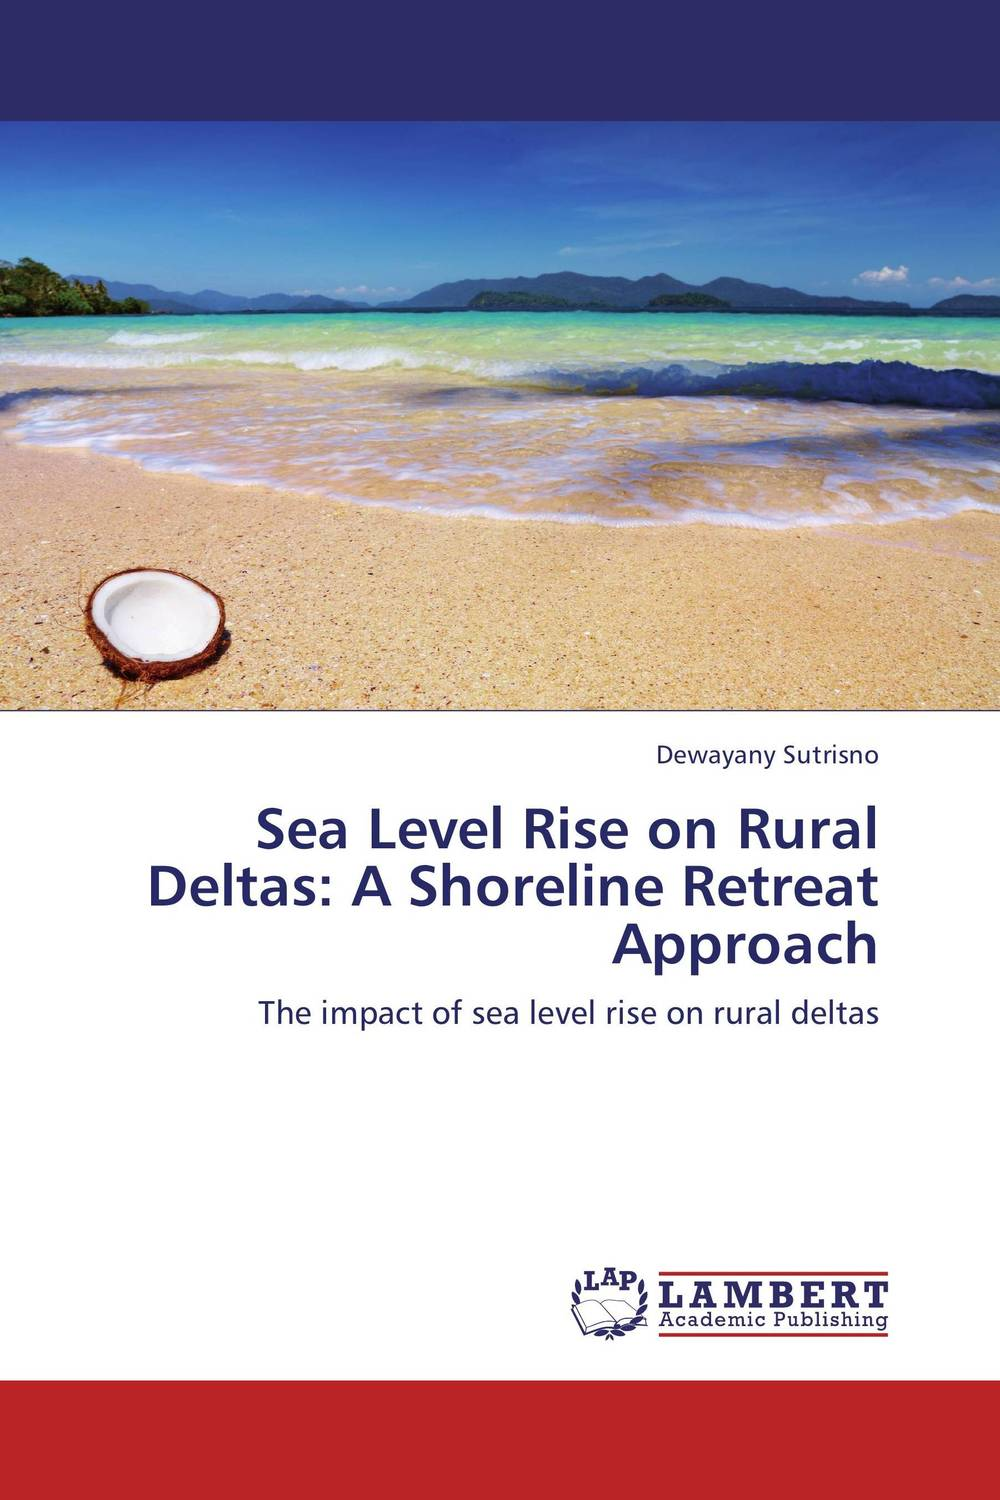 Sea Level Rise on Rural Deltas: A Shoreline Retreat Approach given to the sea